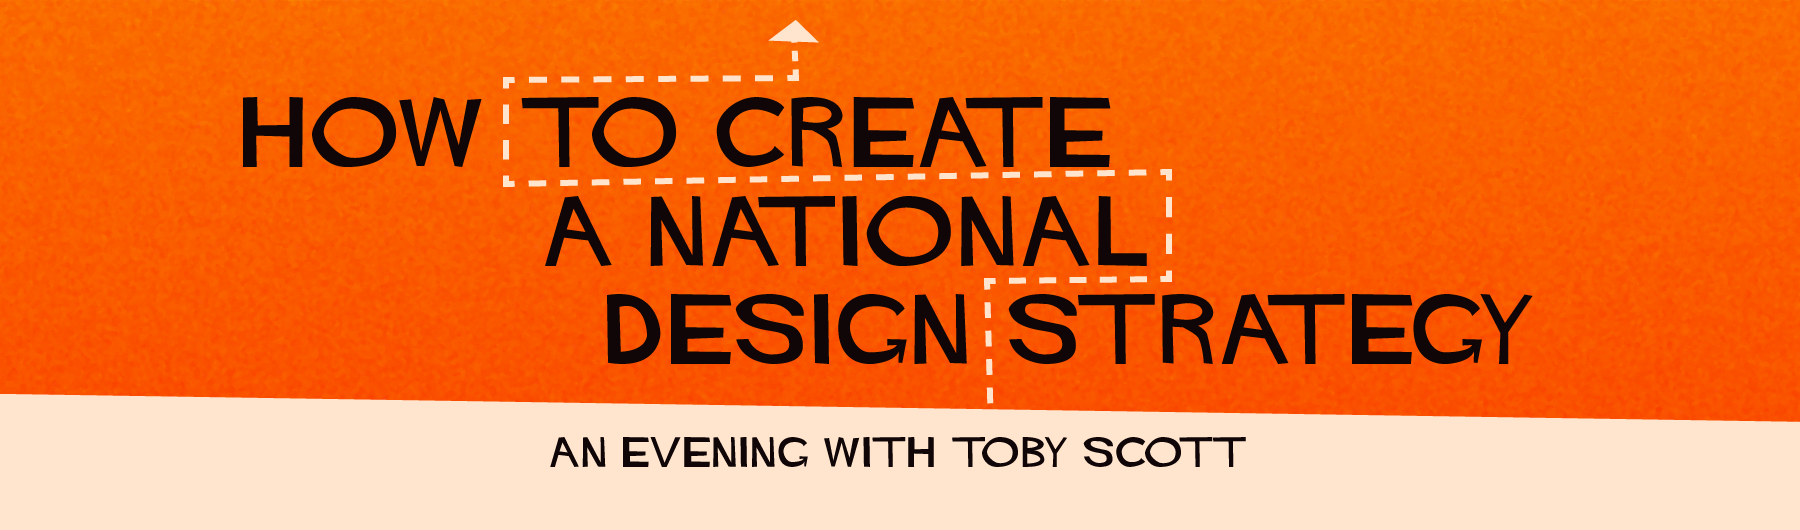 How to Create a National Design Strategy